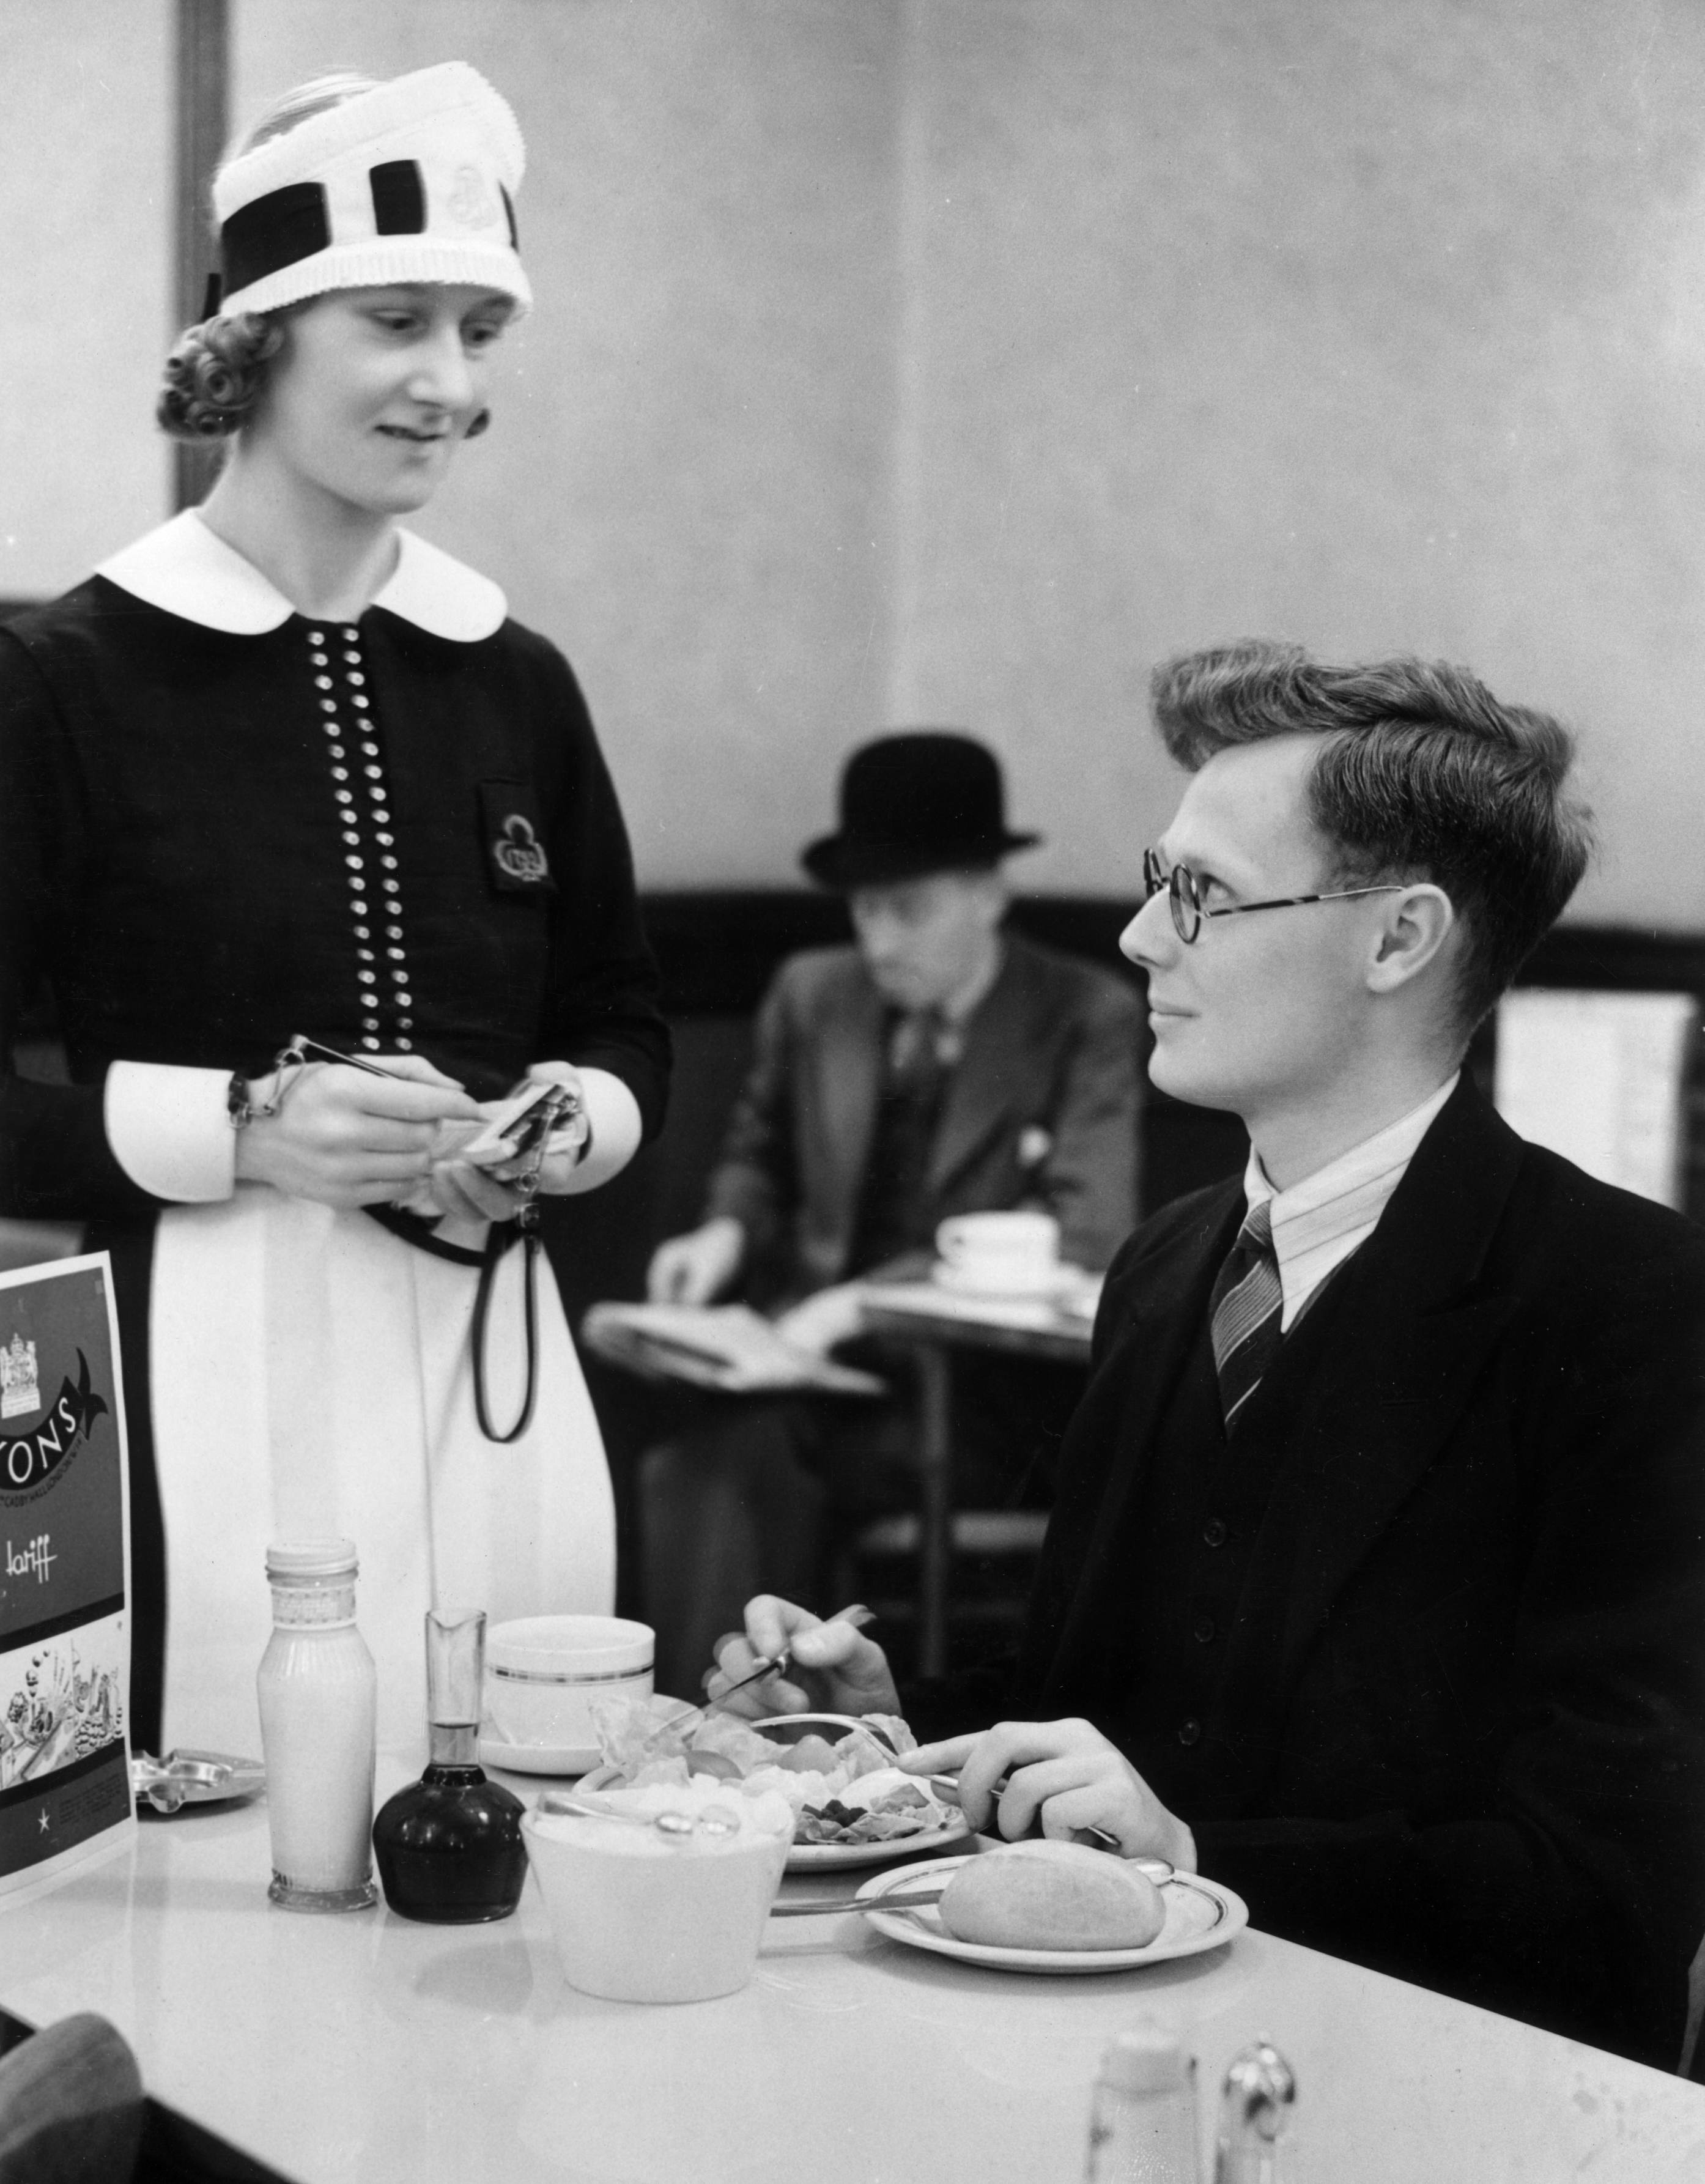 14th July 1939:  Mr Edwin Barrall, an office worker in the City of London enjoys his last 'civvy' lunch at the Lyon's Tea Room in Ludgate Circus. The next day he is to become a militiaman at the Army's headquarters in Aldershot.  (Photo by William Vanderson/Fox Photos/Getty Images)